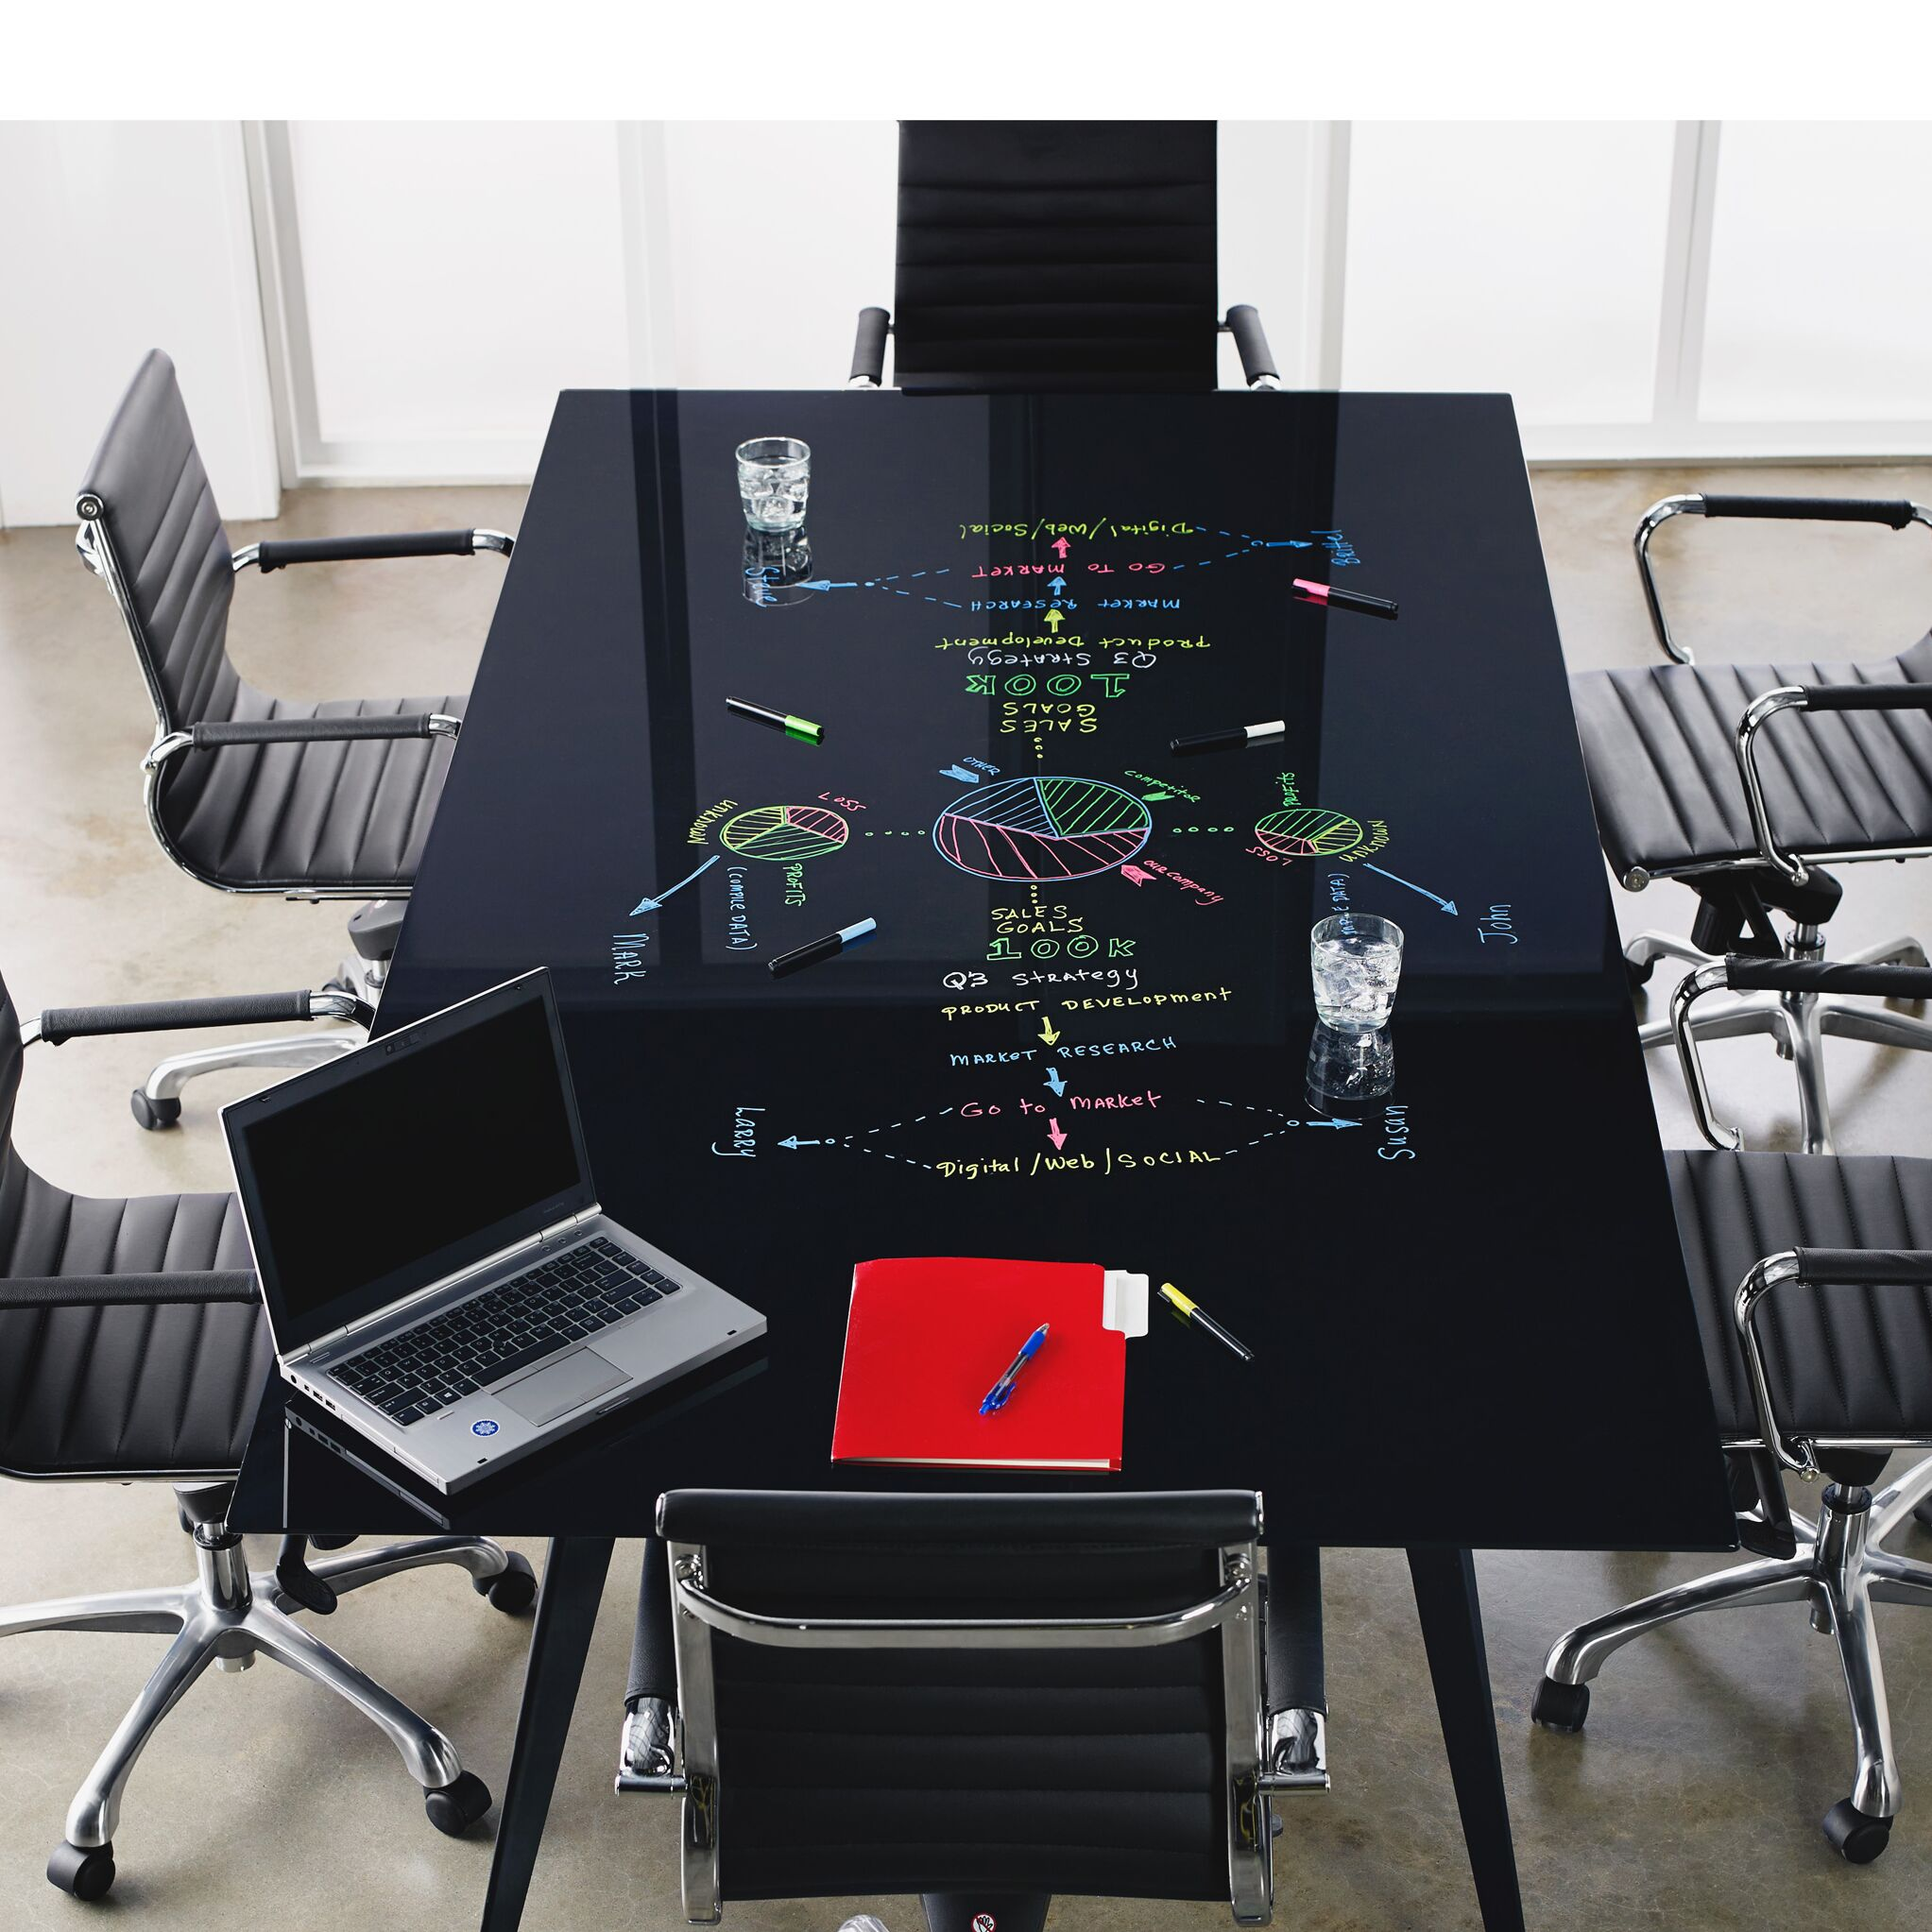 Conference Table Top Size: 3.2